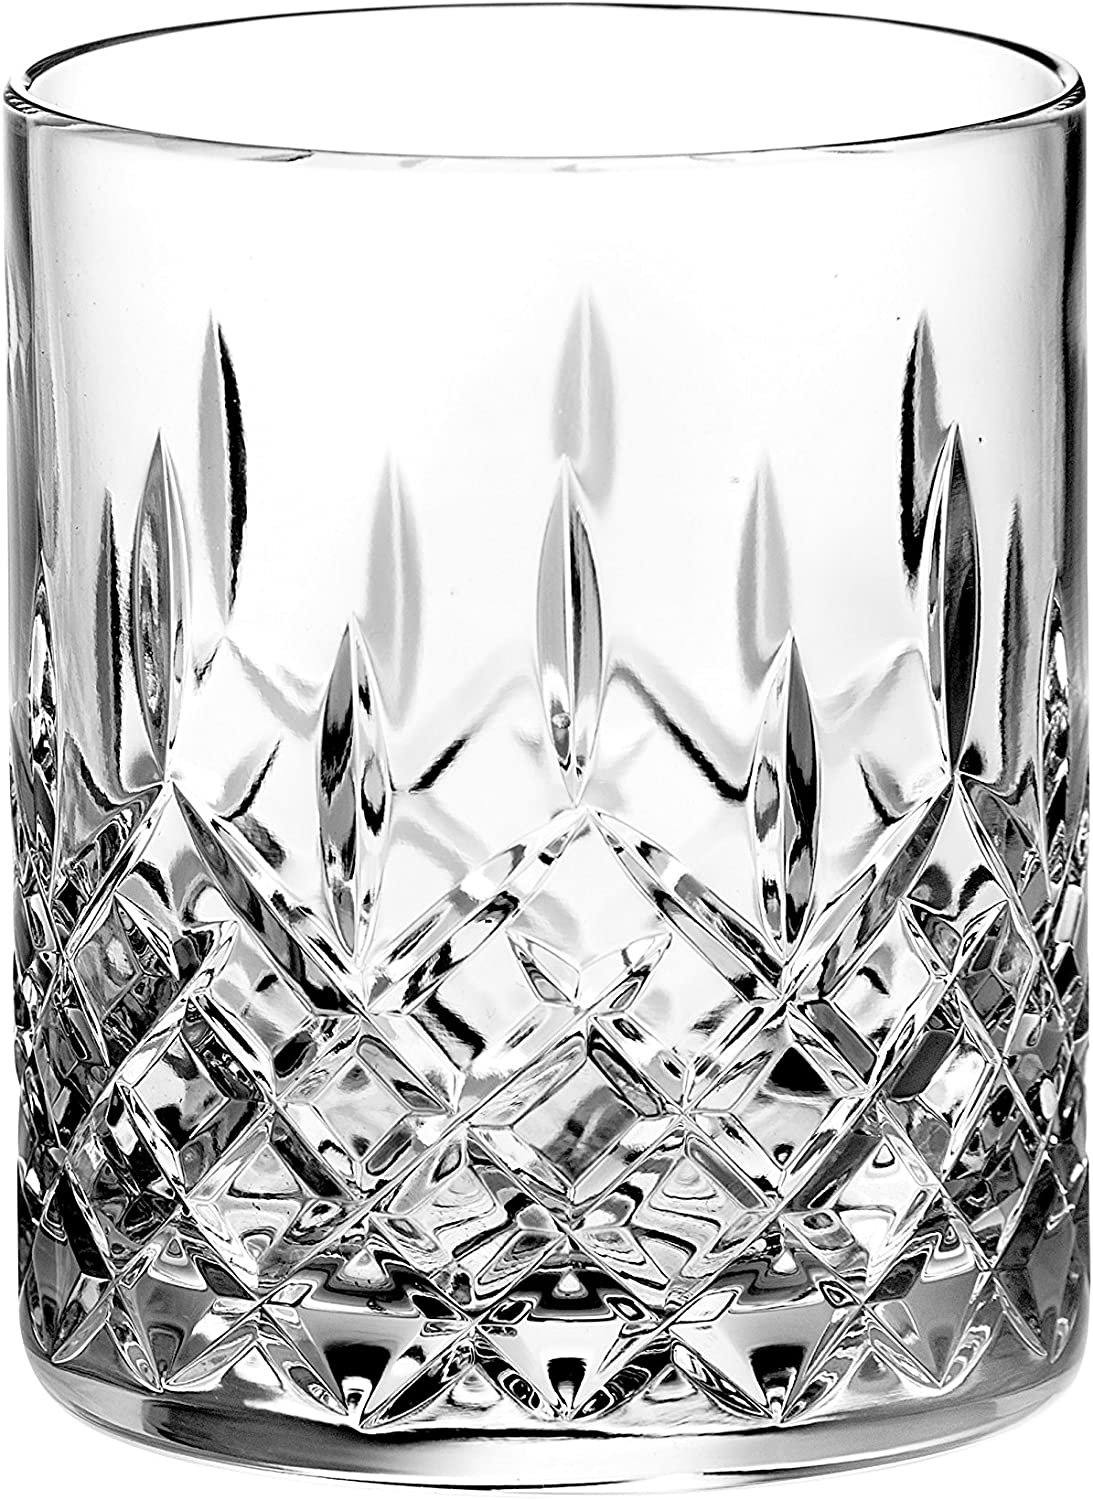 Crystal Double Old Fashioned - Set of 6 Glasses - Hand Cut DOF tumblers - Tumbler Glass For Whiskey - Bourbon - Water - Beverage - Drinking Glasses - 12 oz - Made in Europe By Barski